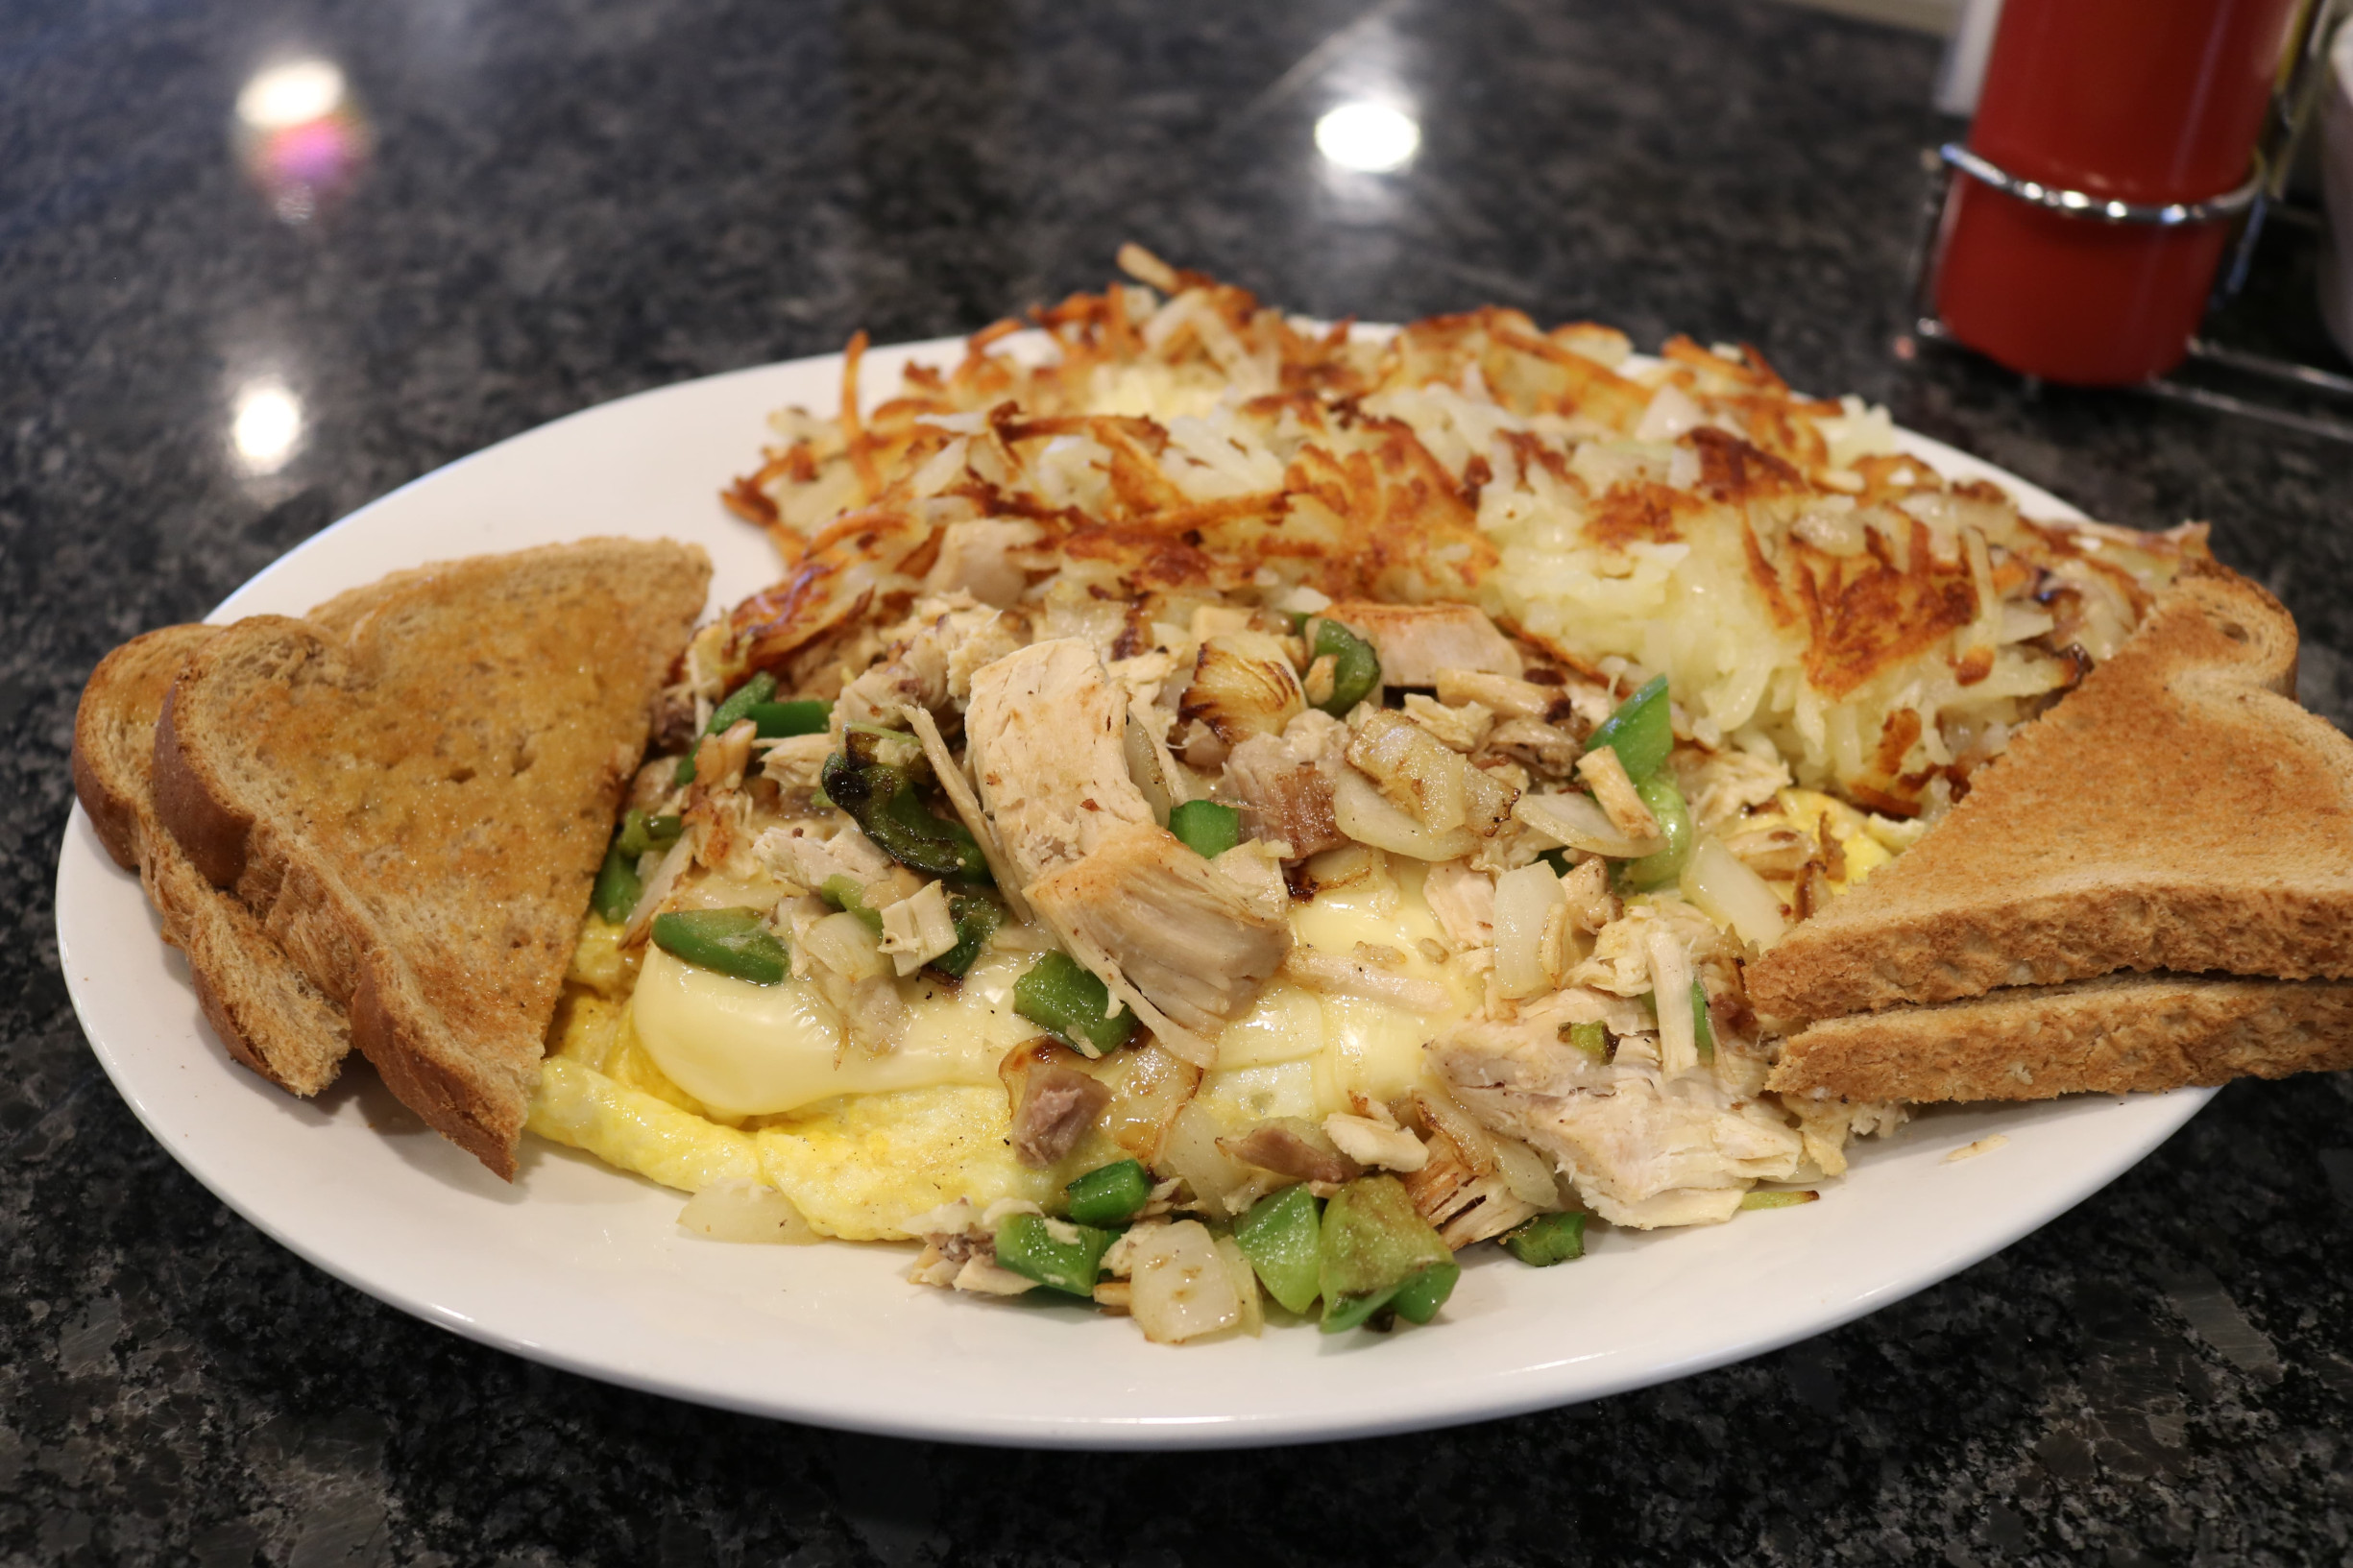 Turkey and Swiss Omelet